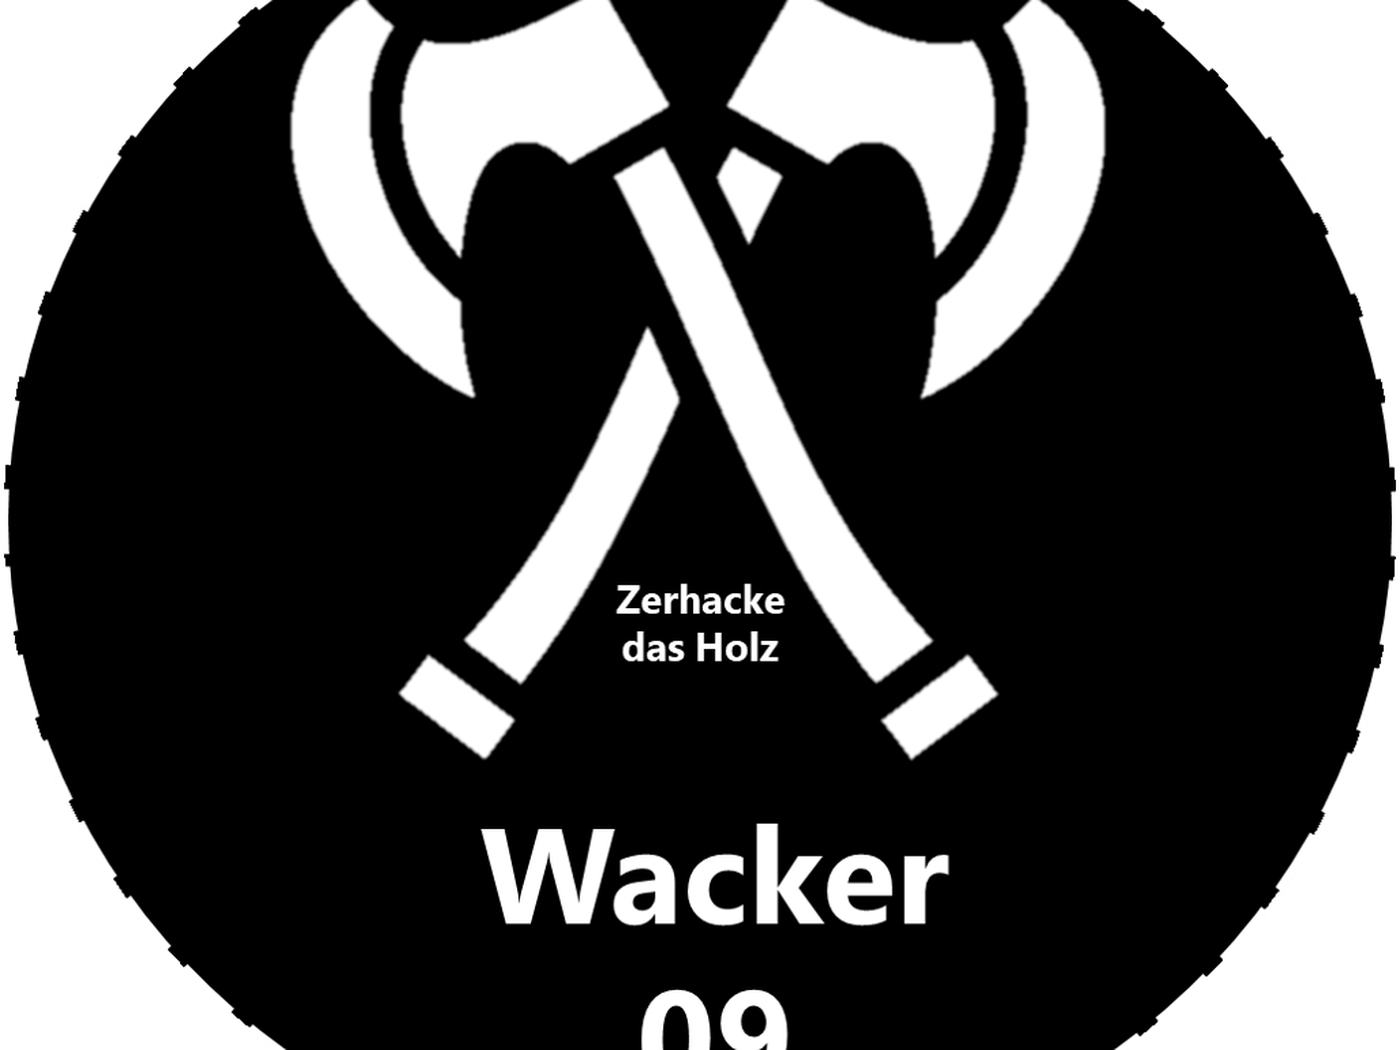 Zerhacke das Holz: The Black Forest's Wacker 09 - Bavarian Football Works